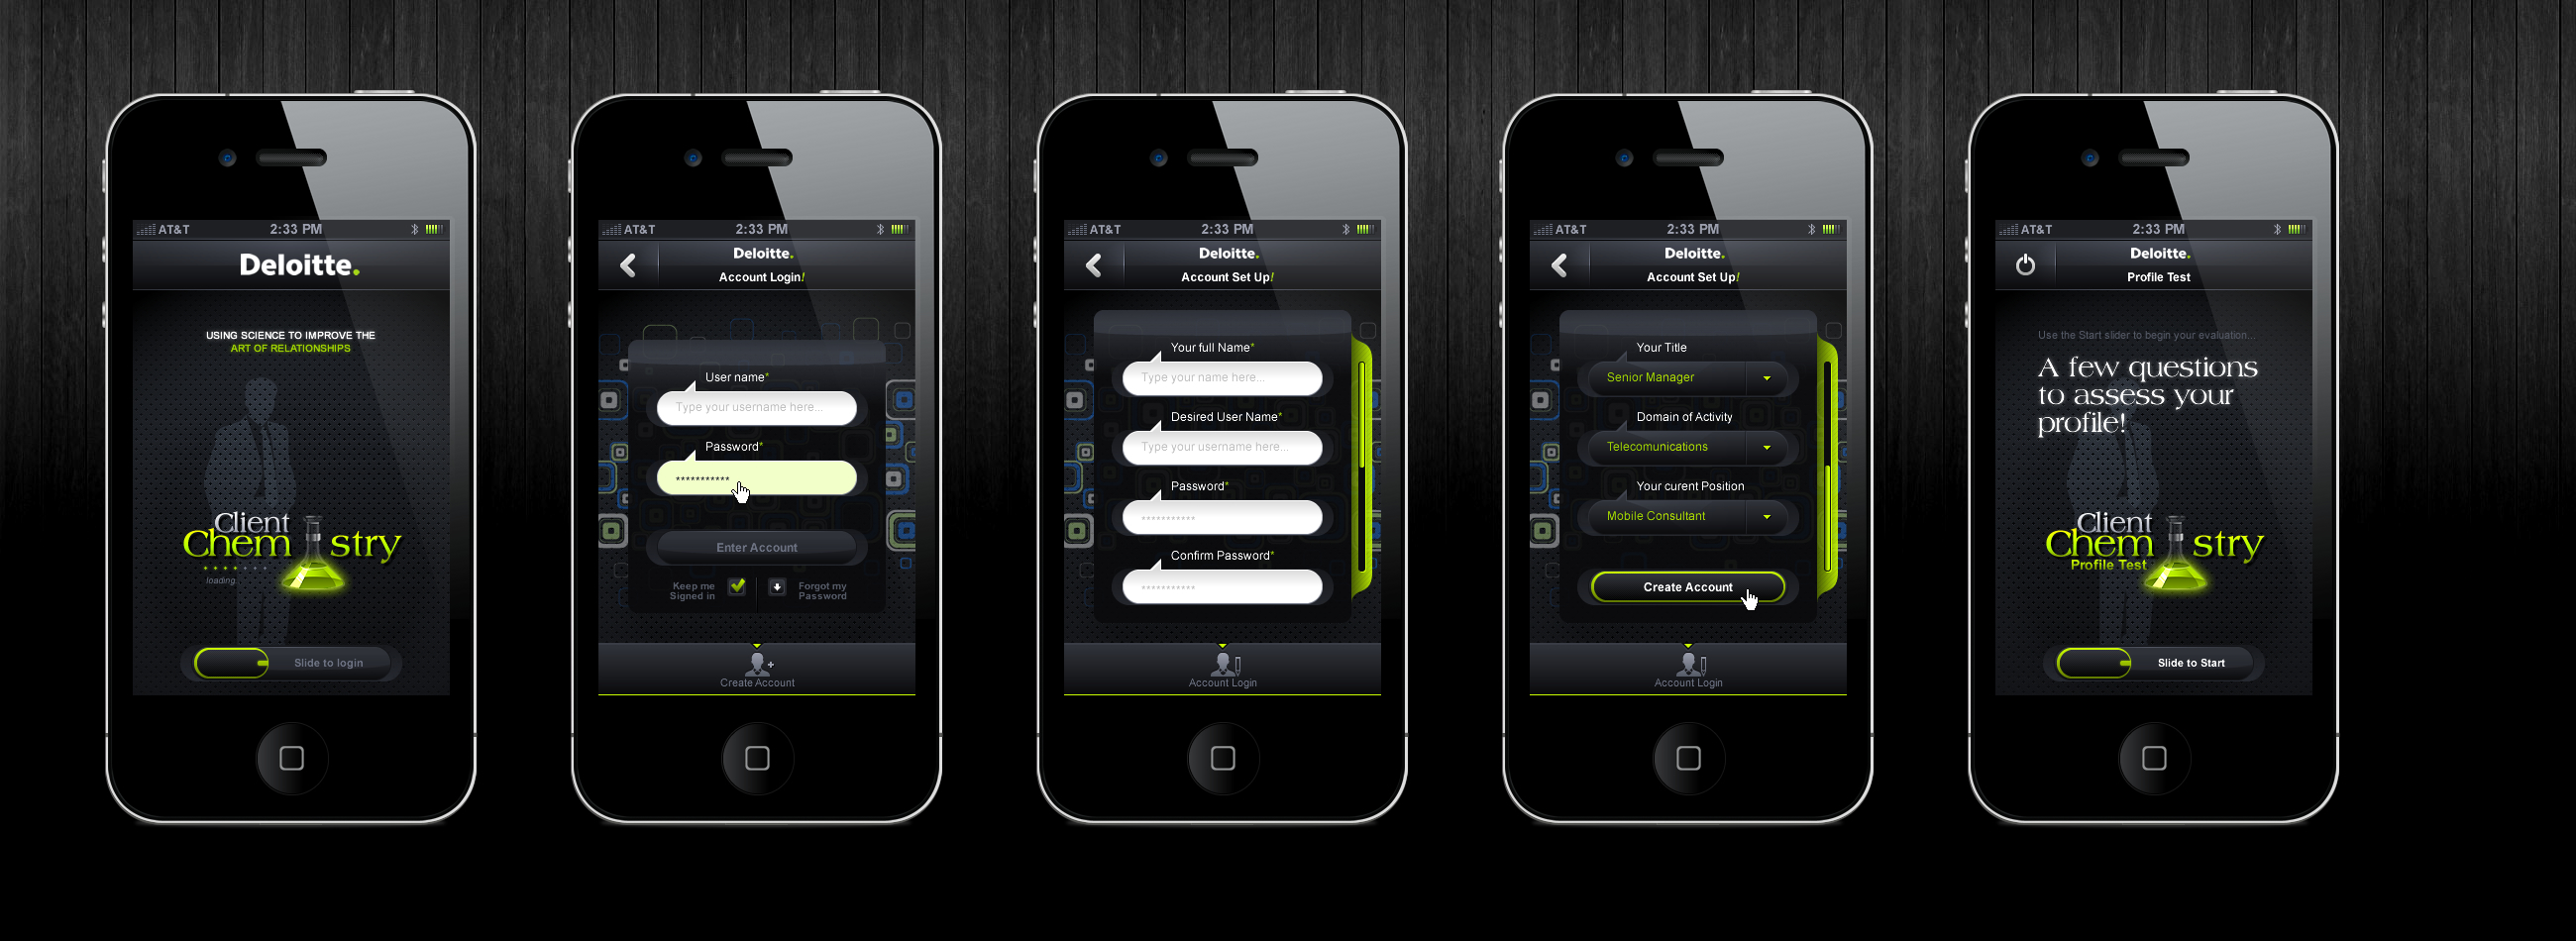 iphone application design by sonyaxel on deviantart. Black Bedroom Furniture Sets. Home Design Ideas